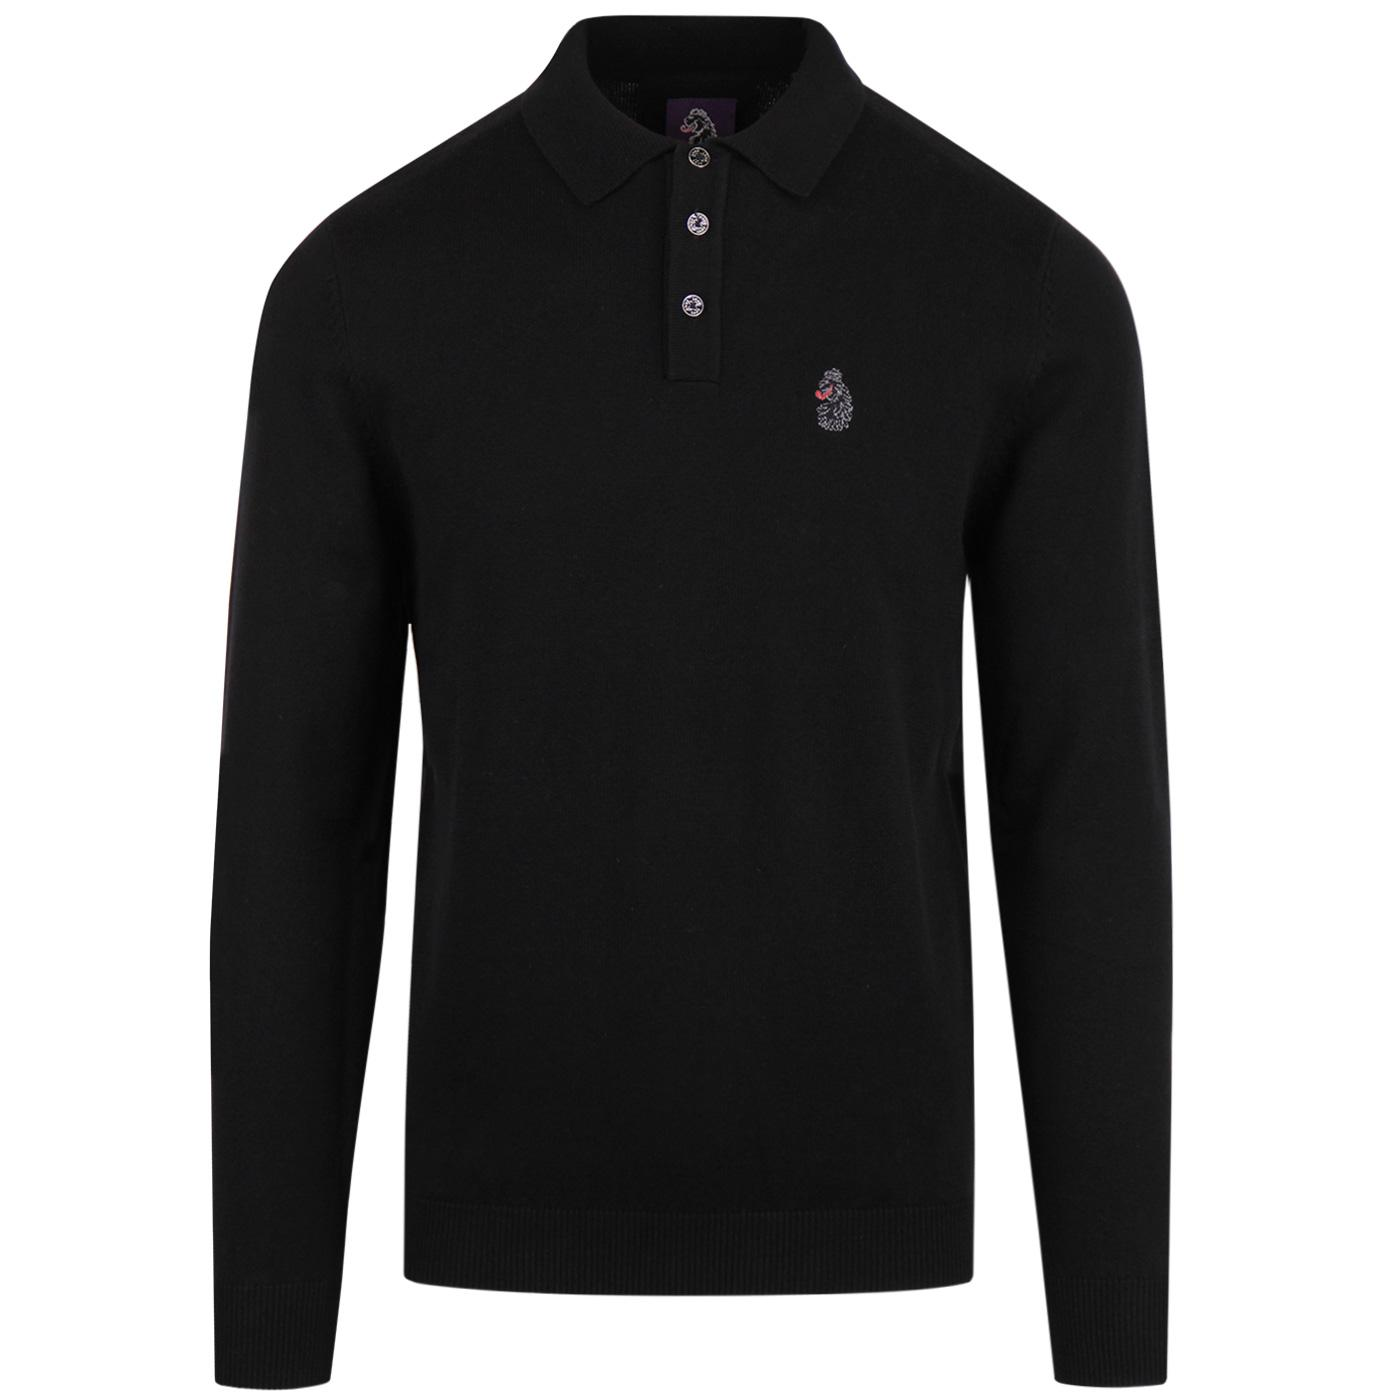 Magnesium LUKE Retro Mod Fine Knitted Polo Shirt